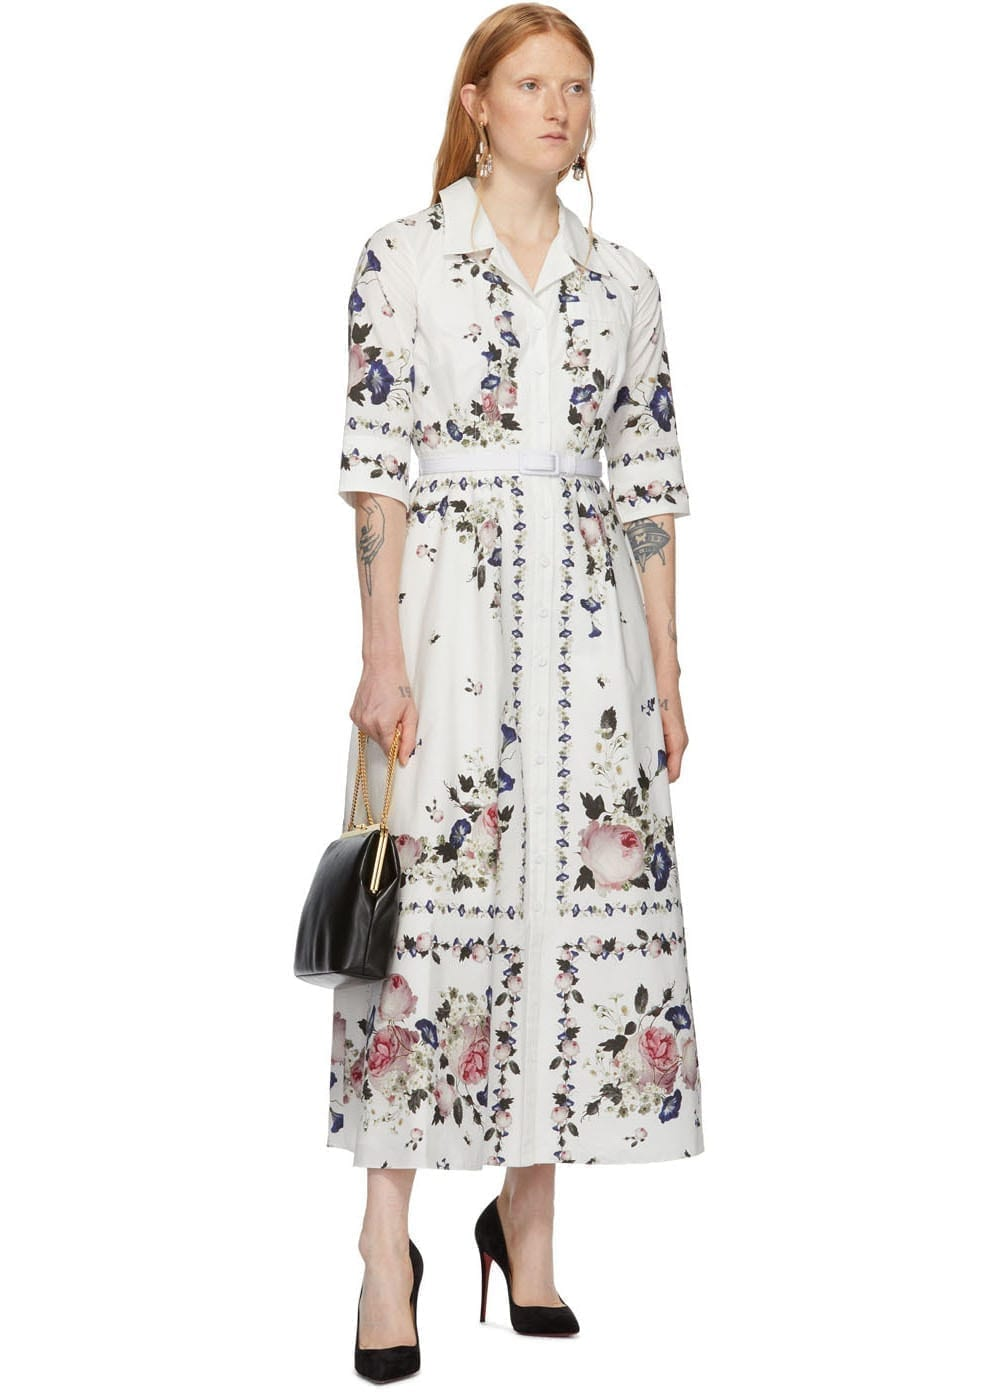 ERDEM White Kasia Dress